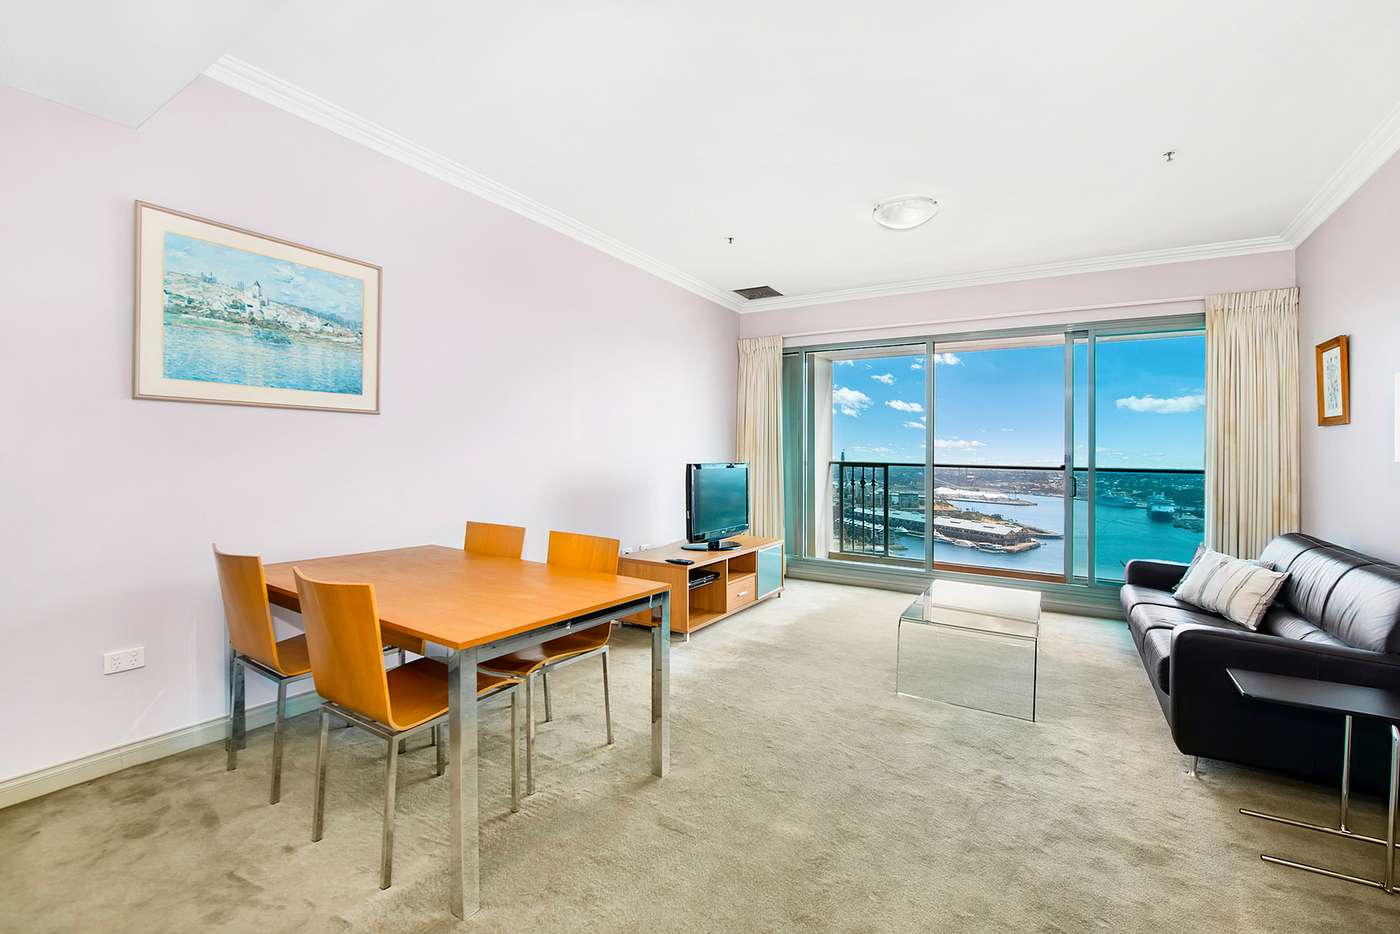 Main view of Homely apartment listing, 127 Kent St, Sydney NSW 2000